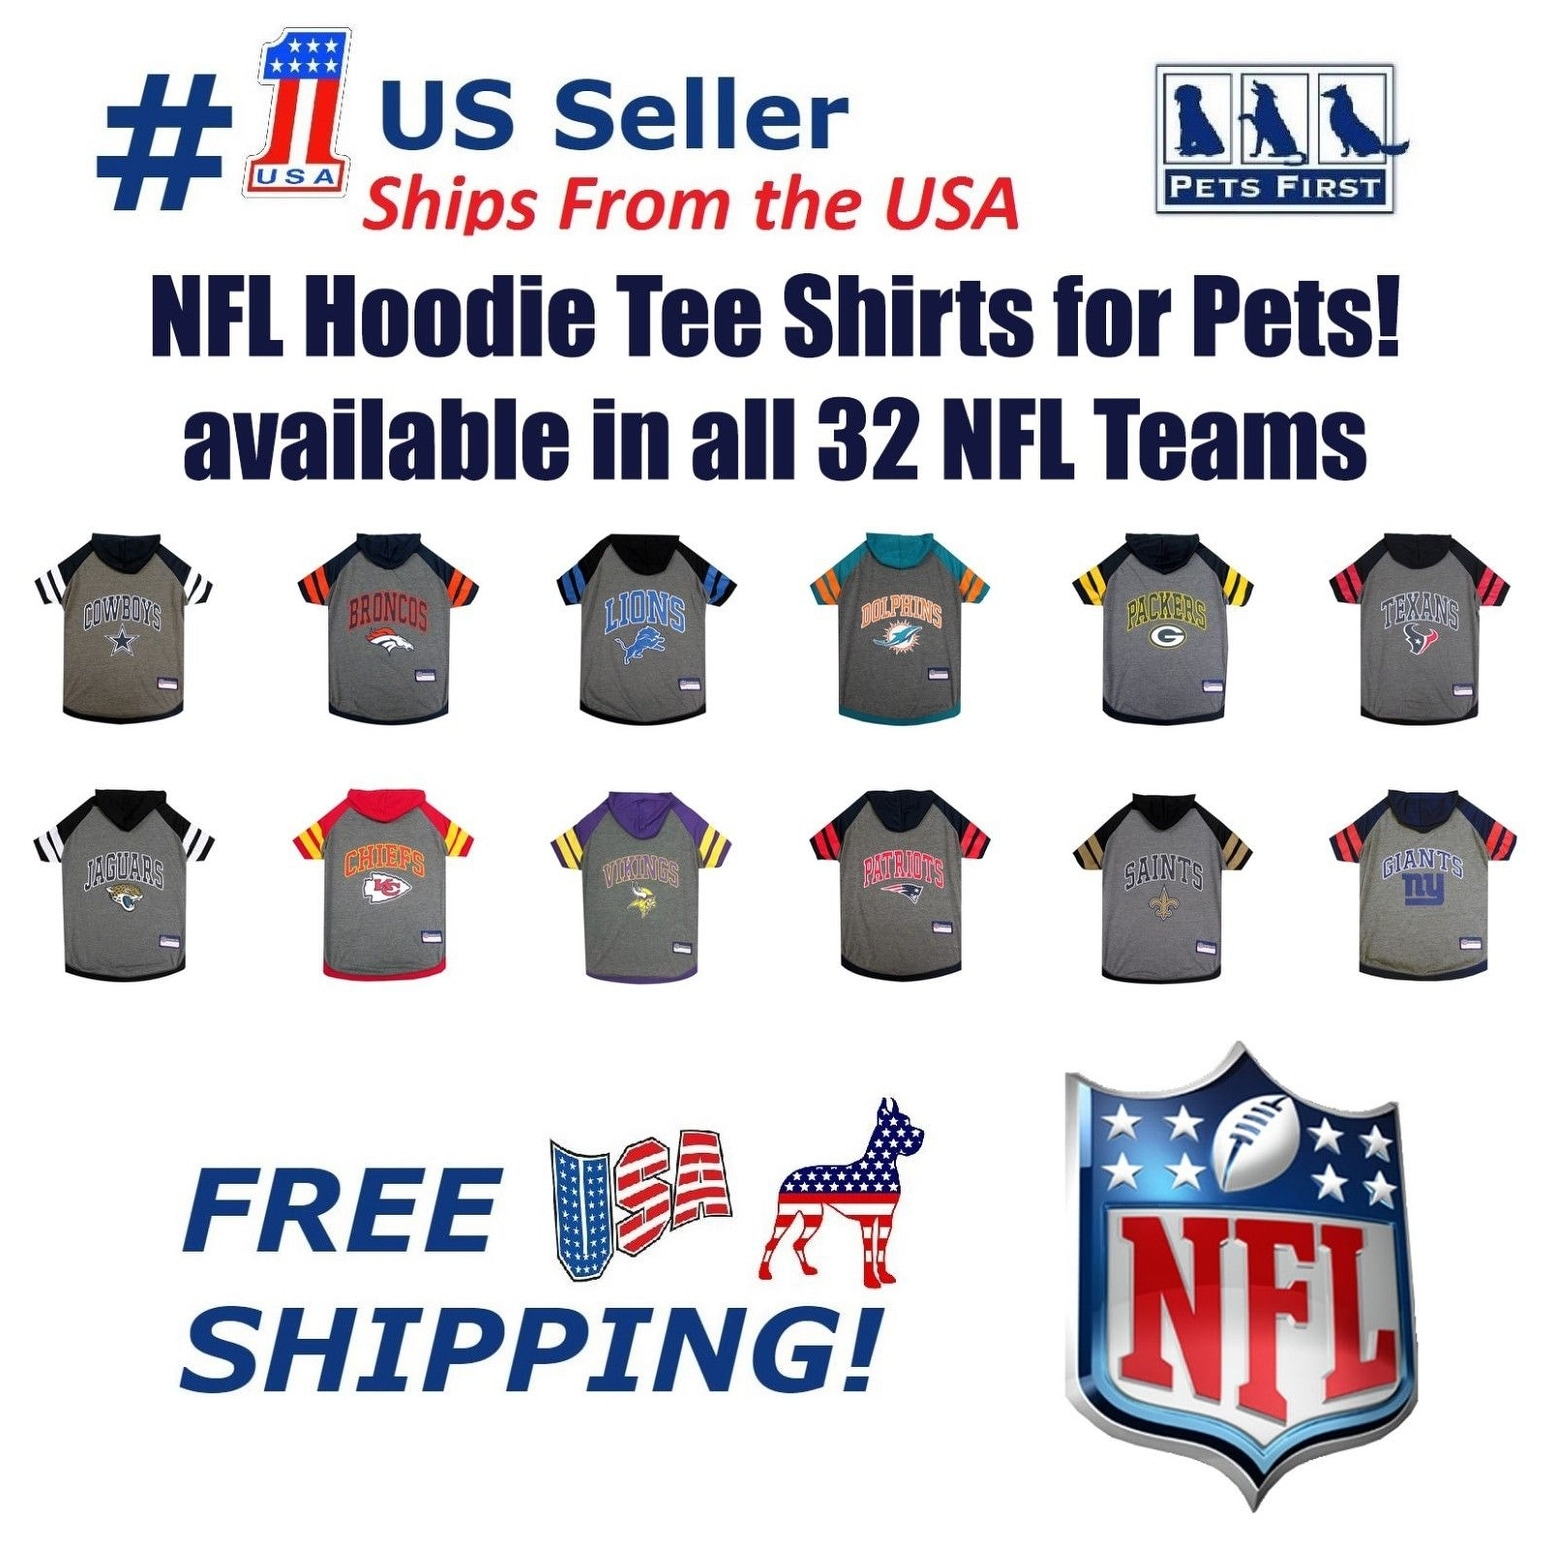 a07b91767b4 Pets First NFL Hoodie Tee Shirt for Dogs & Cats - COOL T-Shirt (